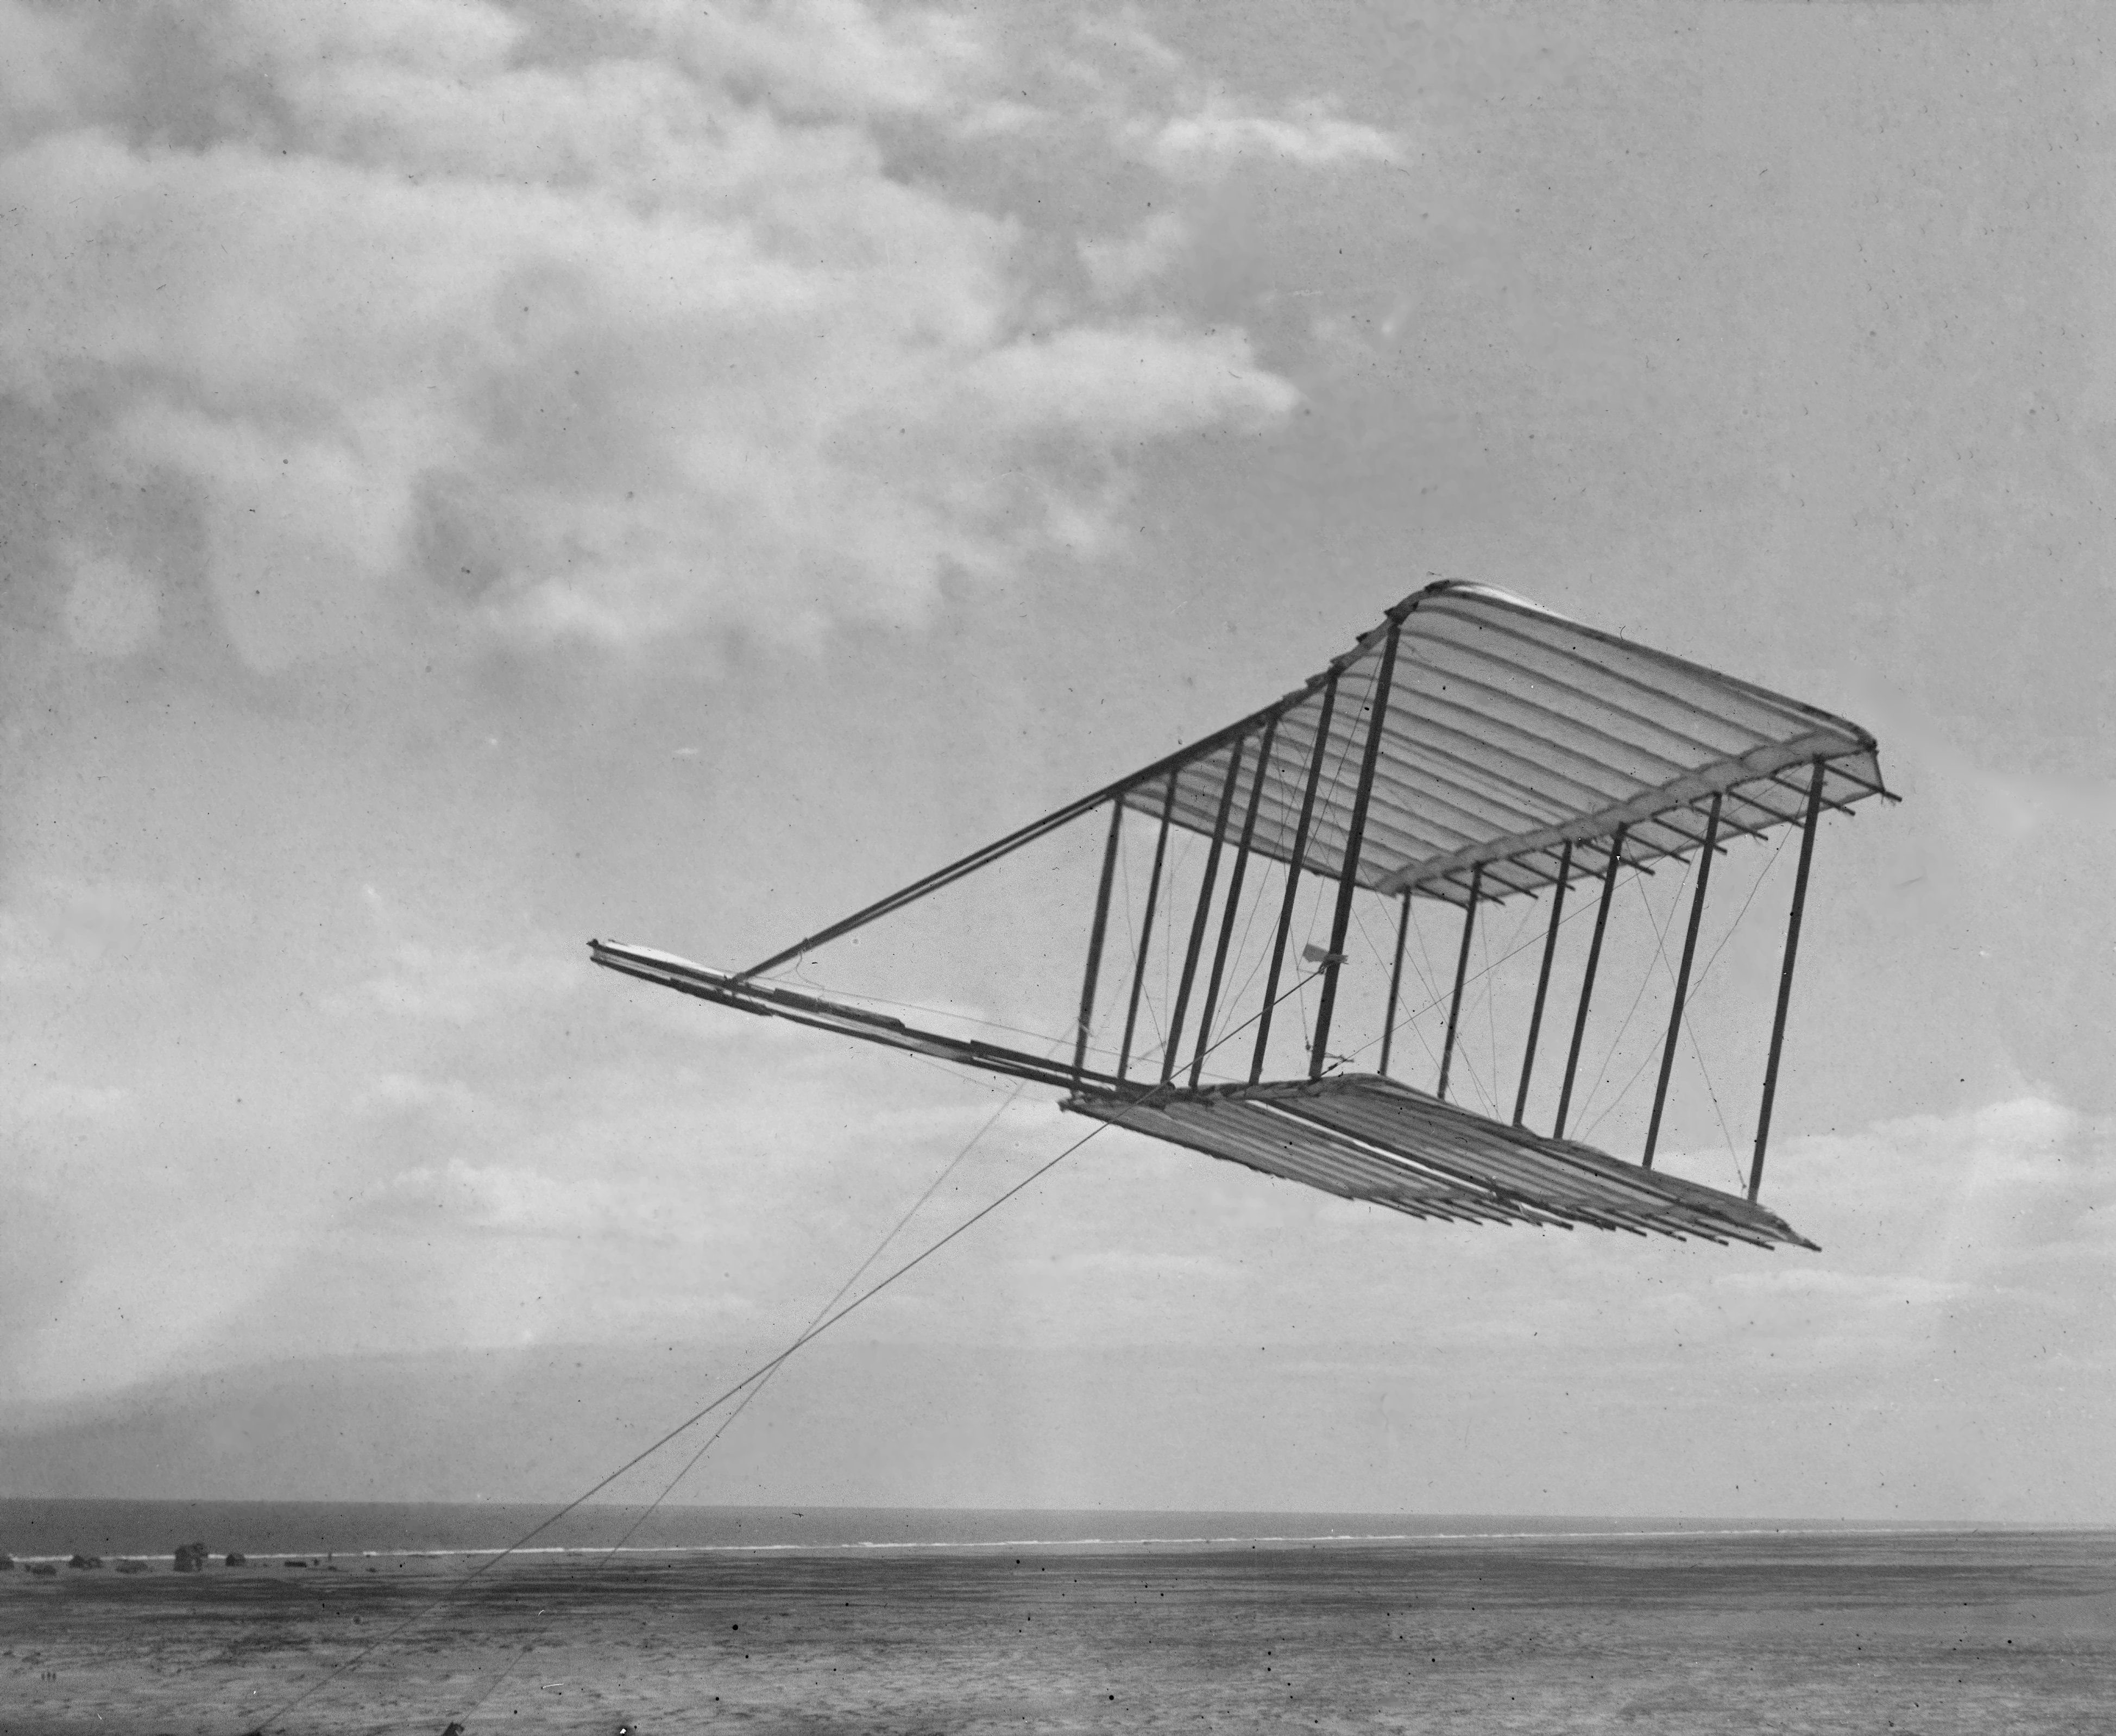 First Wright Brothers Flight pertaining to wrightbrothers   diafora   pinterest   wright brothers, airplanes